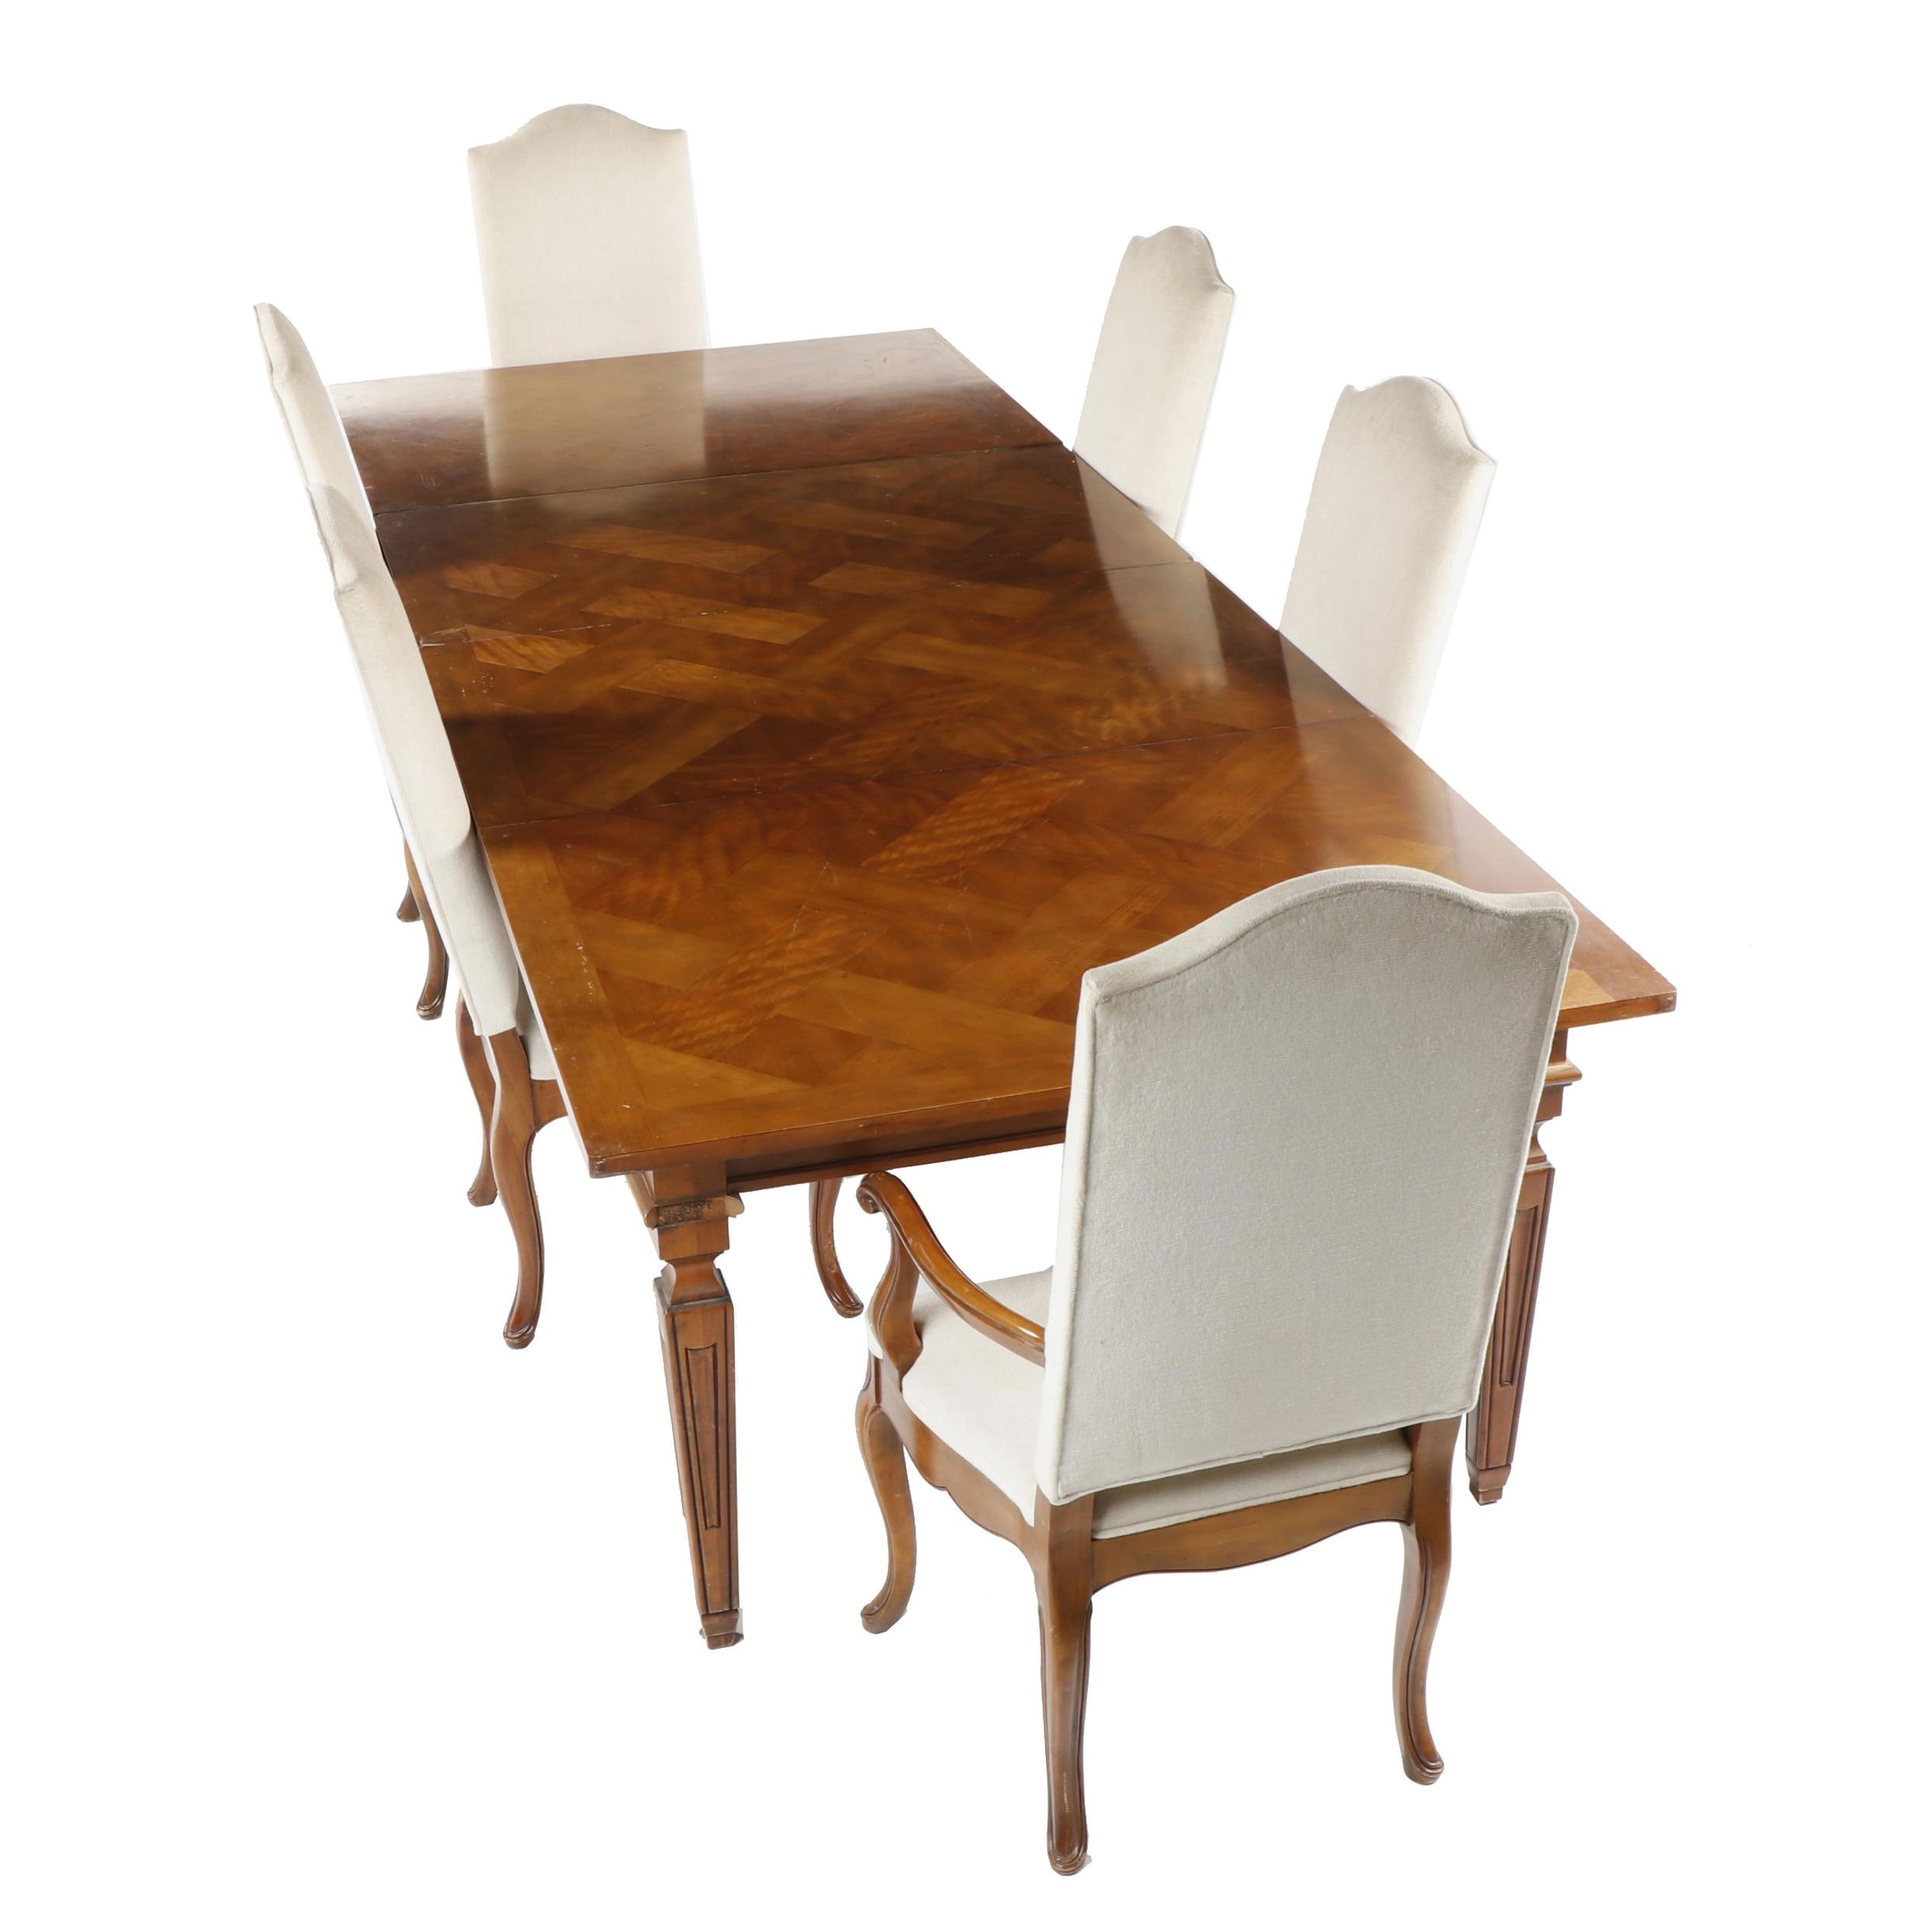 Baker Dining Table with Herringbone Maple Parquetry and Upholstered Chairs